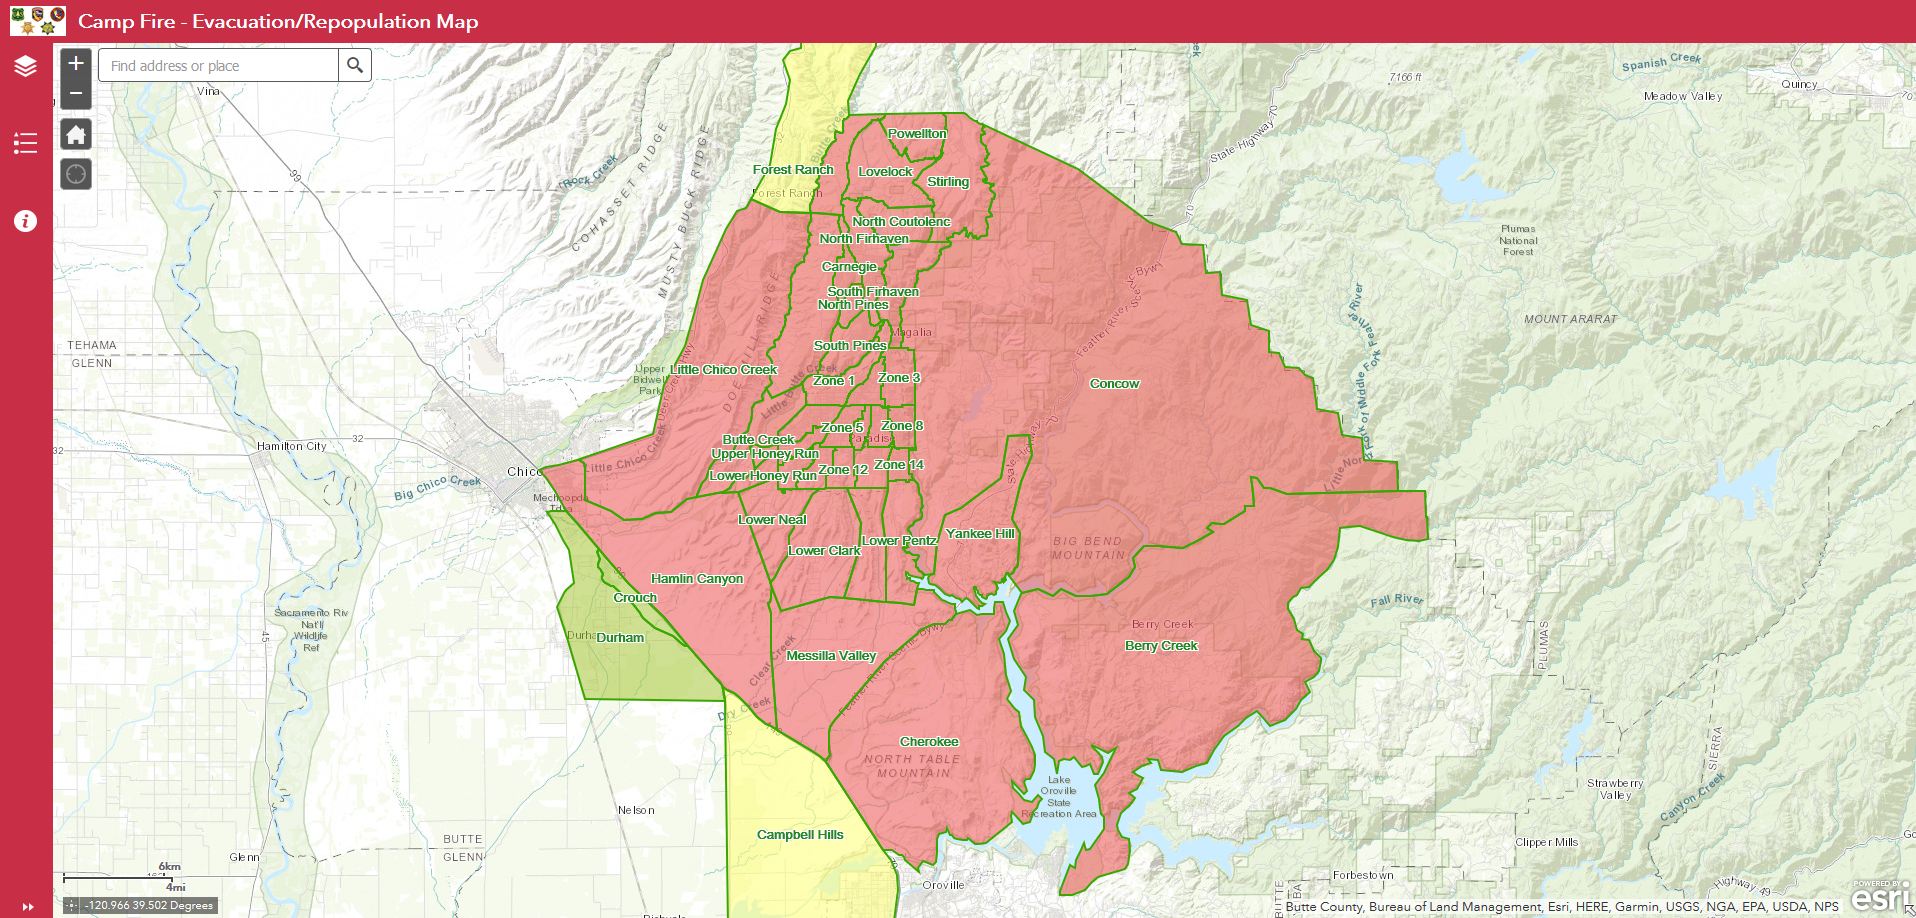 Evacuation/repotion map released for Camp Fire on northern california fires map, ca fire history, ca aerial map, ca elevation map, ca state map, ca parks map, ca oil spill map, ca regions map, ca zoning map, ca air map, ca utility map, california wildfire map, ca gold map, california fires today map, ca geologic map, ca precipitation map, ca county map, ca mountains map, ca drought map, ca highway map,